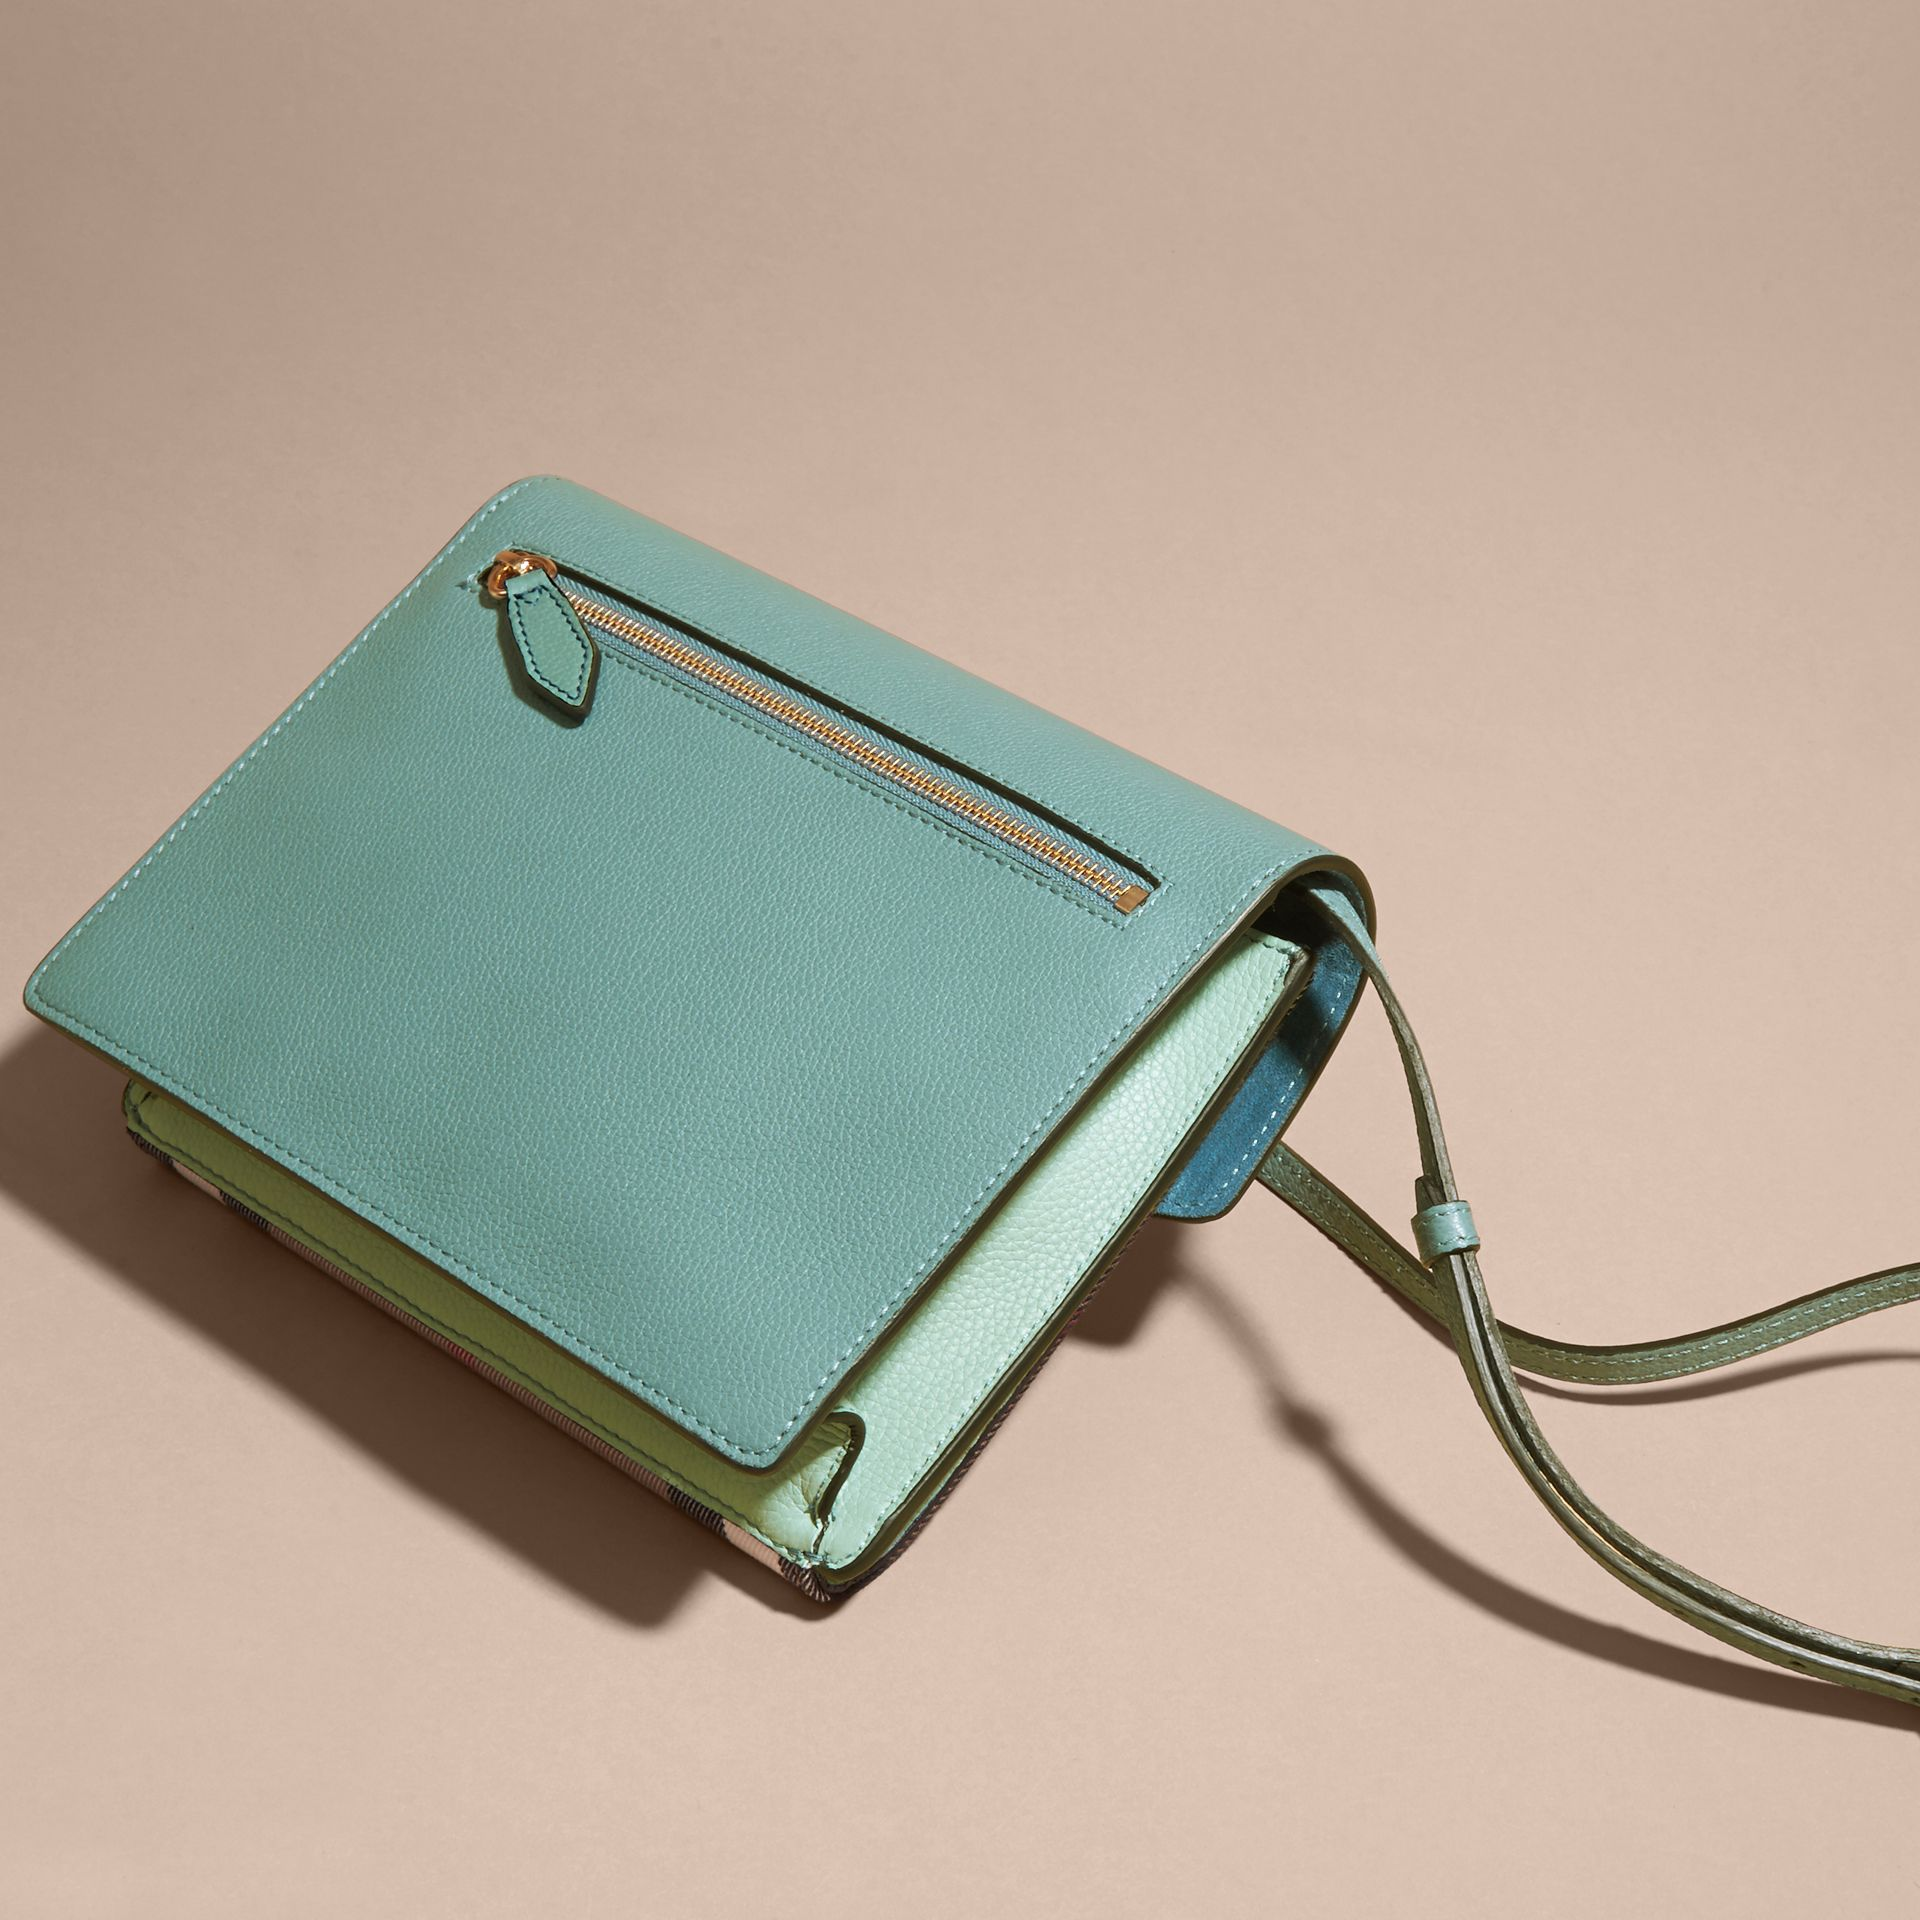 Celadon blue Small Leather and House Check Crossbody Bag Celadon Blue - gallery image 8